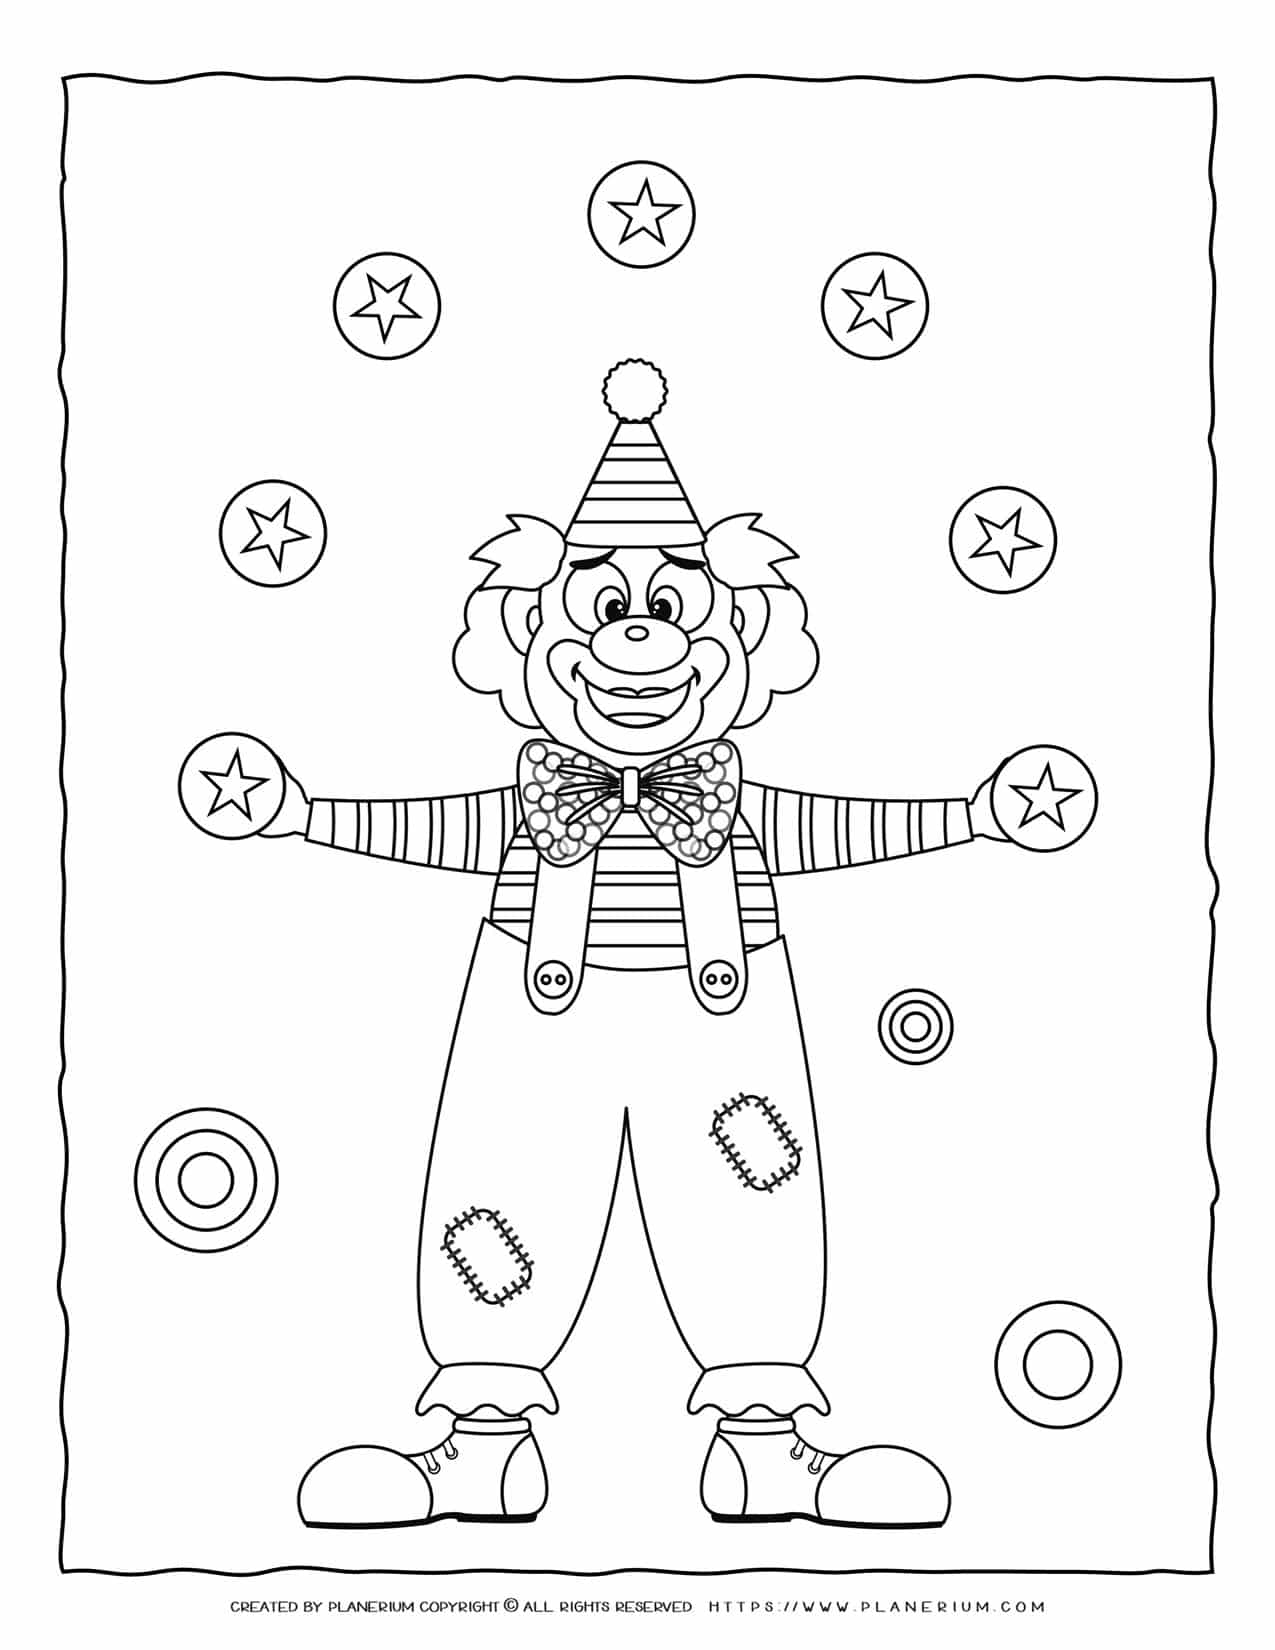 Carnival Coloring Page - Clown Juggling | Planerium